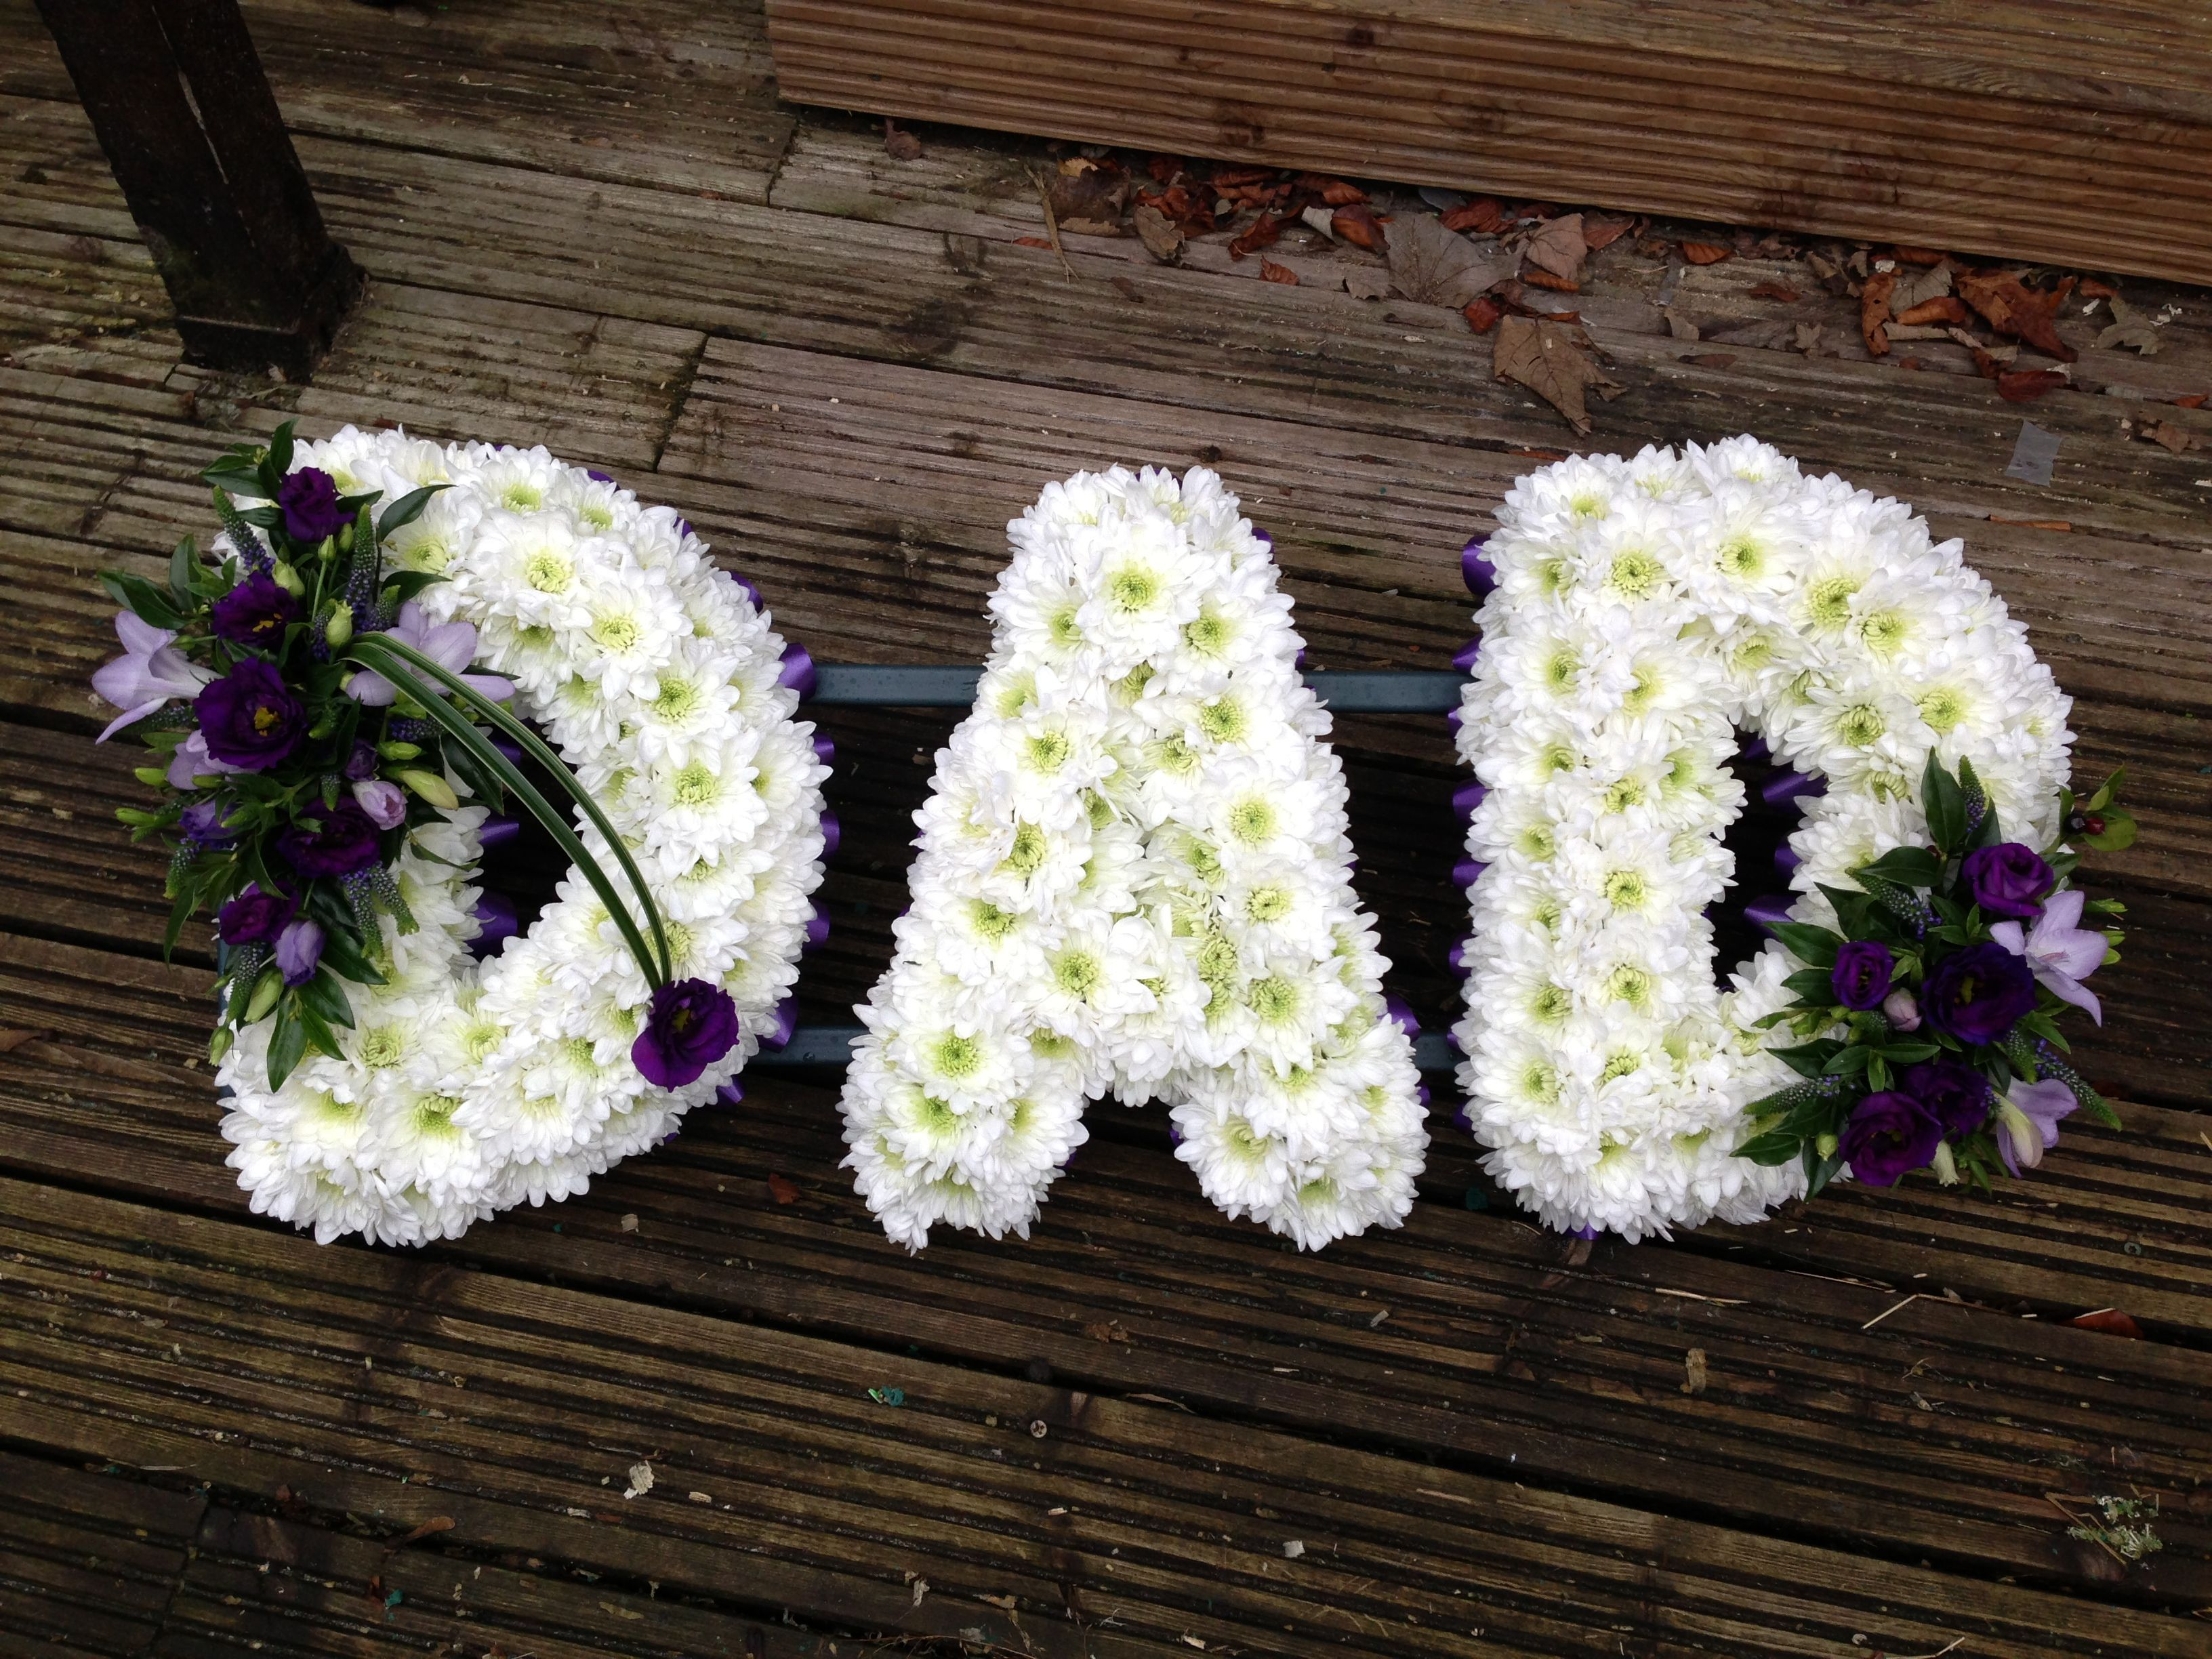 Beautiful Dad funeral wreath purple and white made by daughter all the best